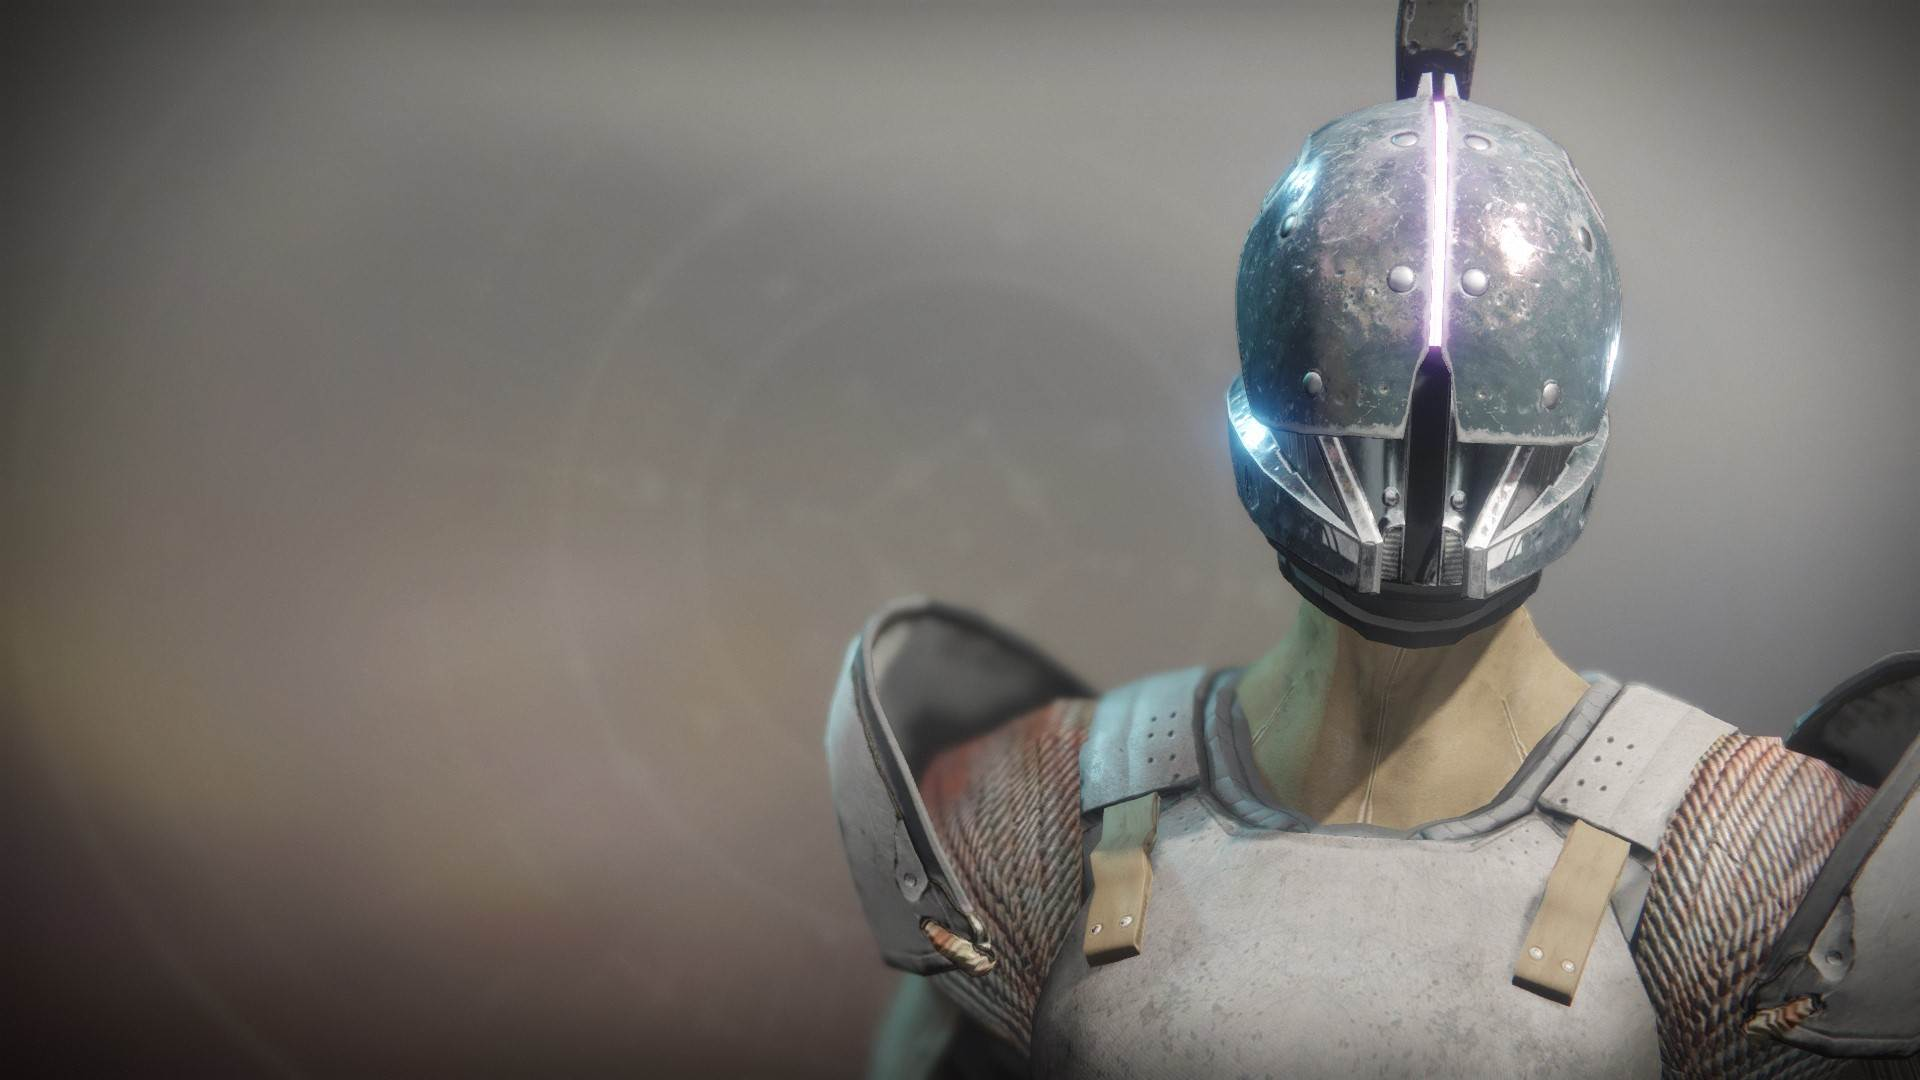 What Xur is selling in Destiny 2 during the week of July 12 through July 16.